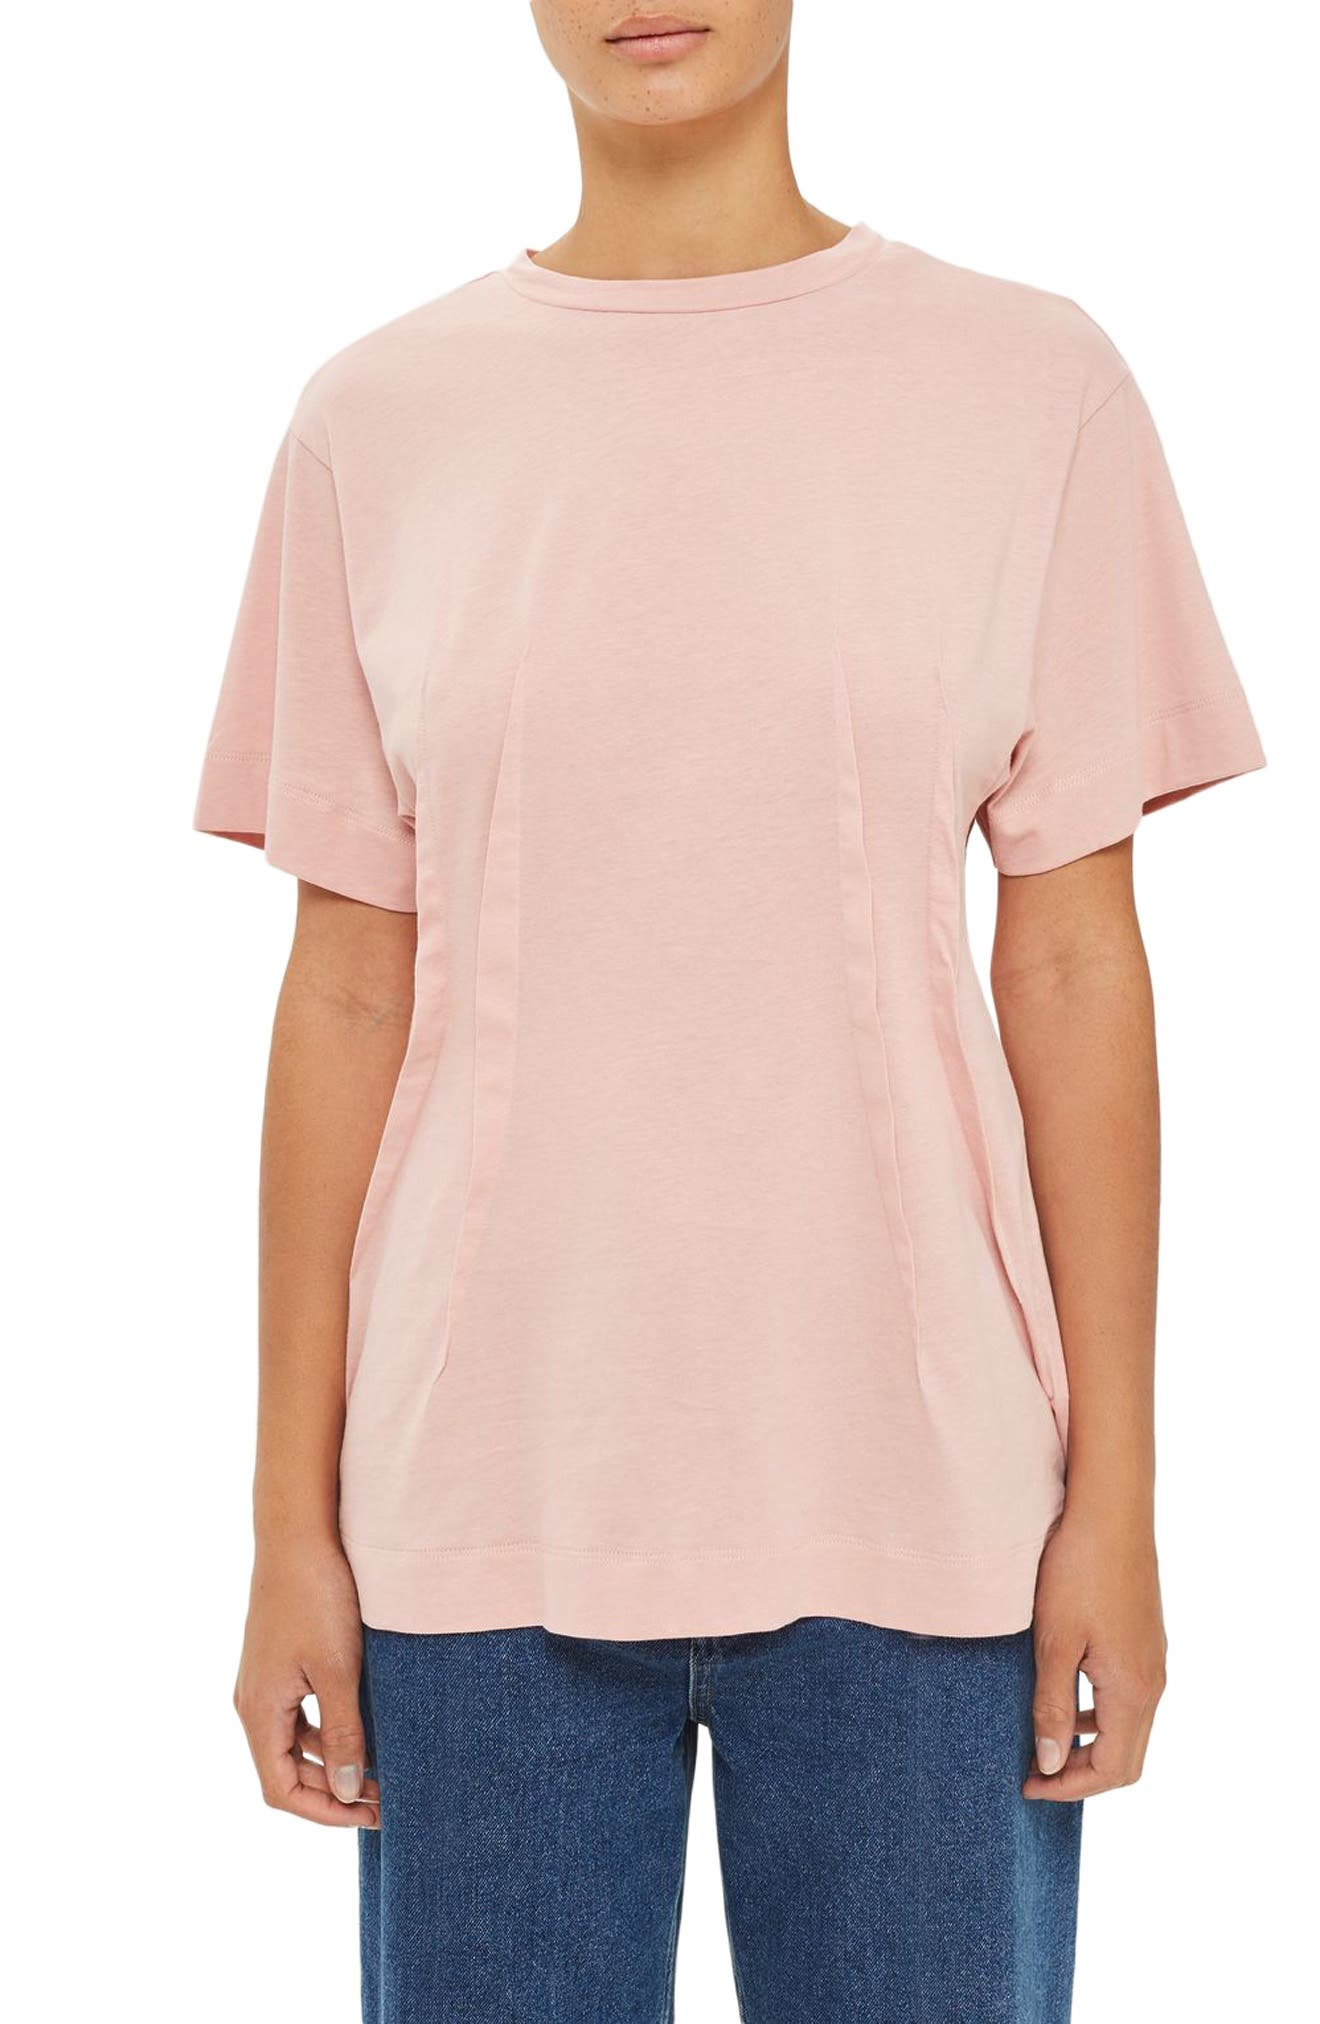 Topshop Boutique Pintuck Tee